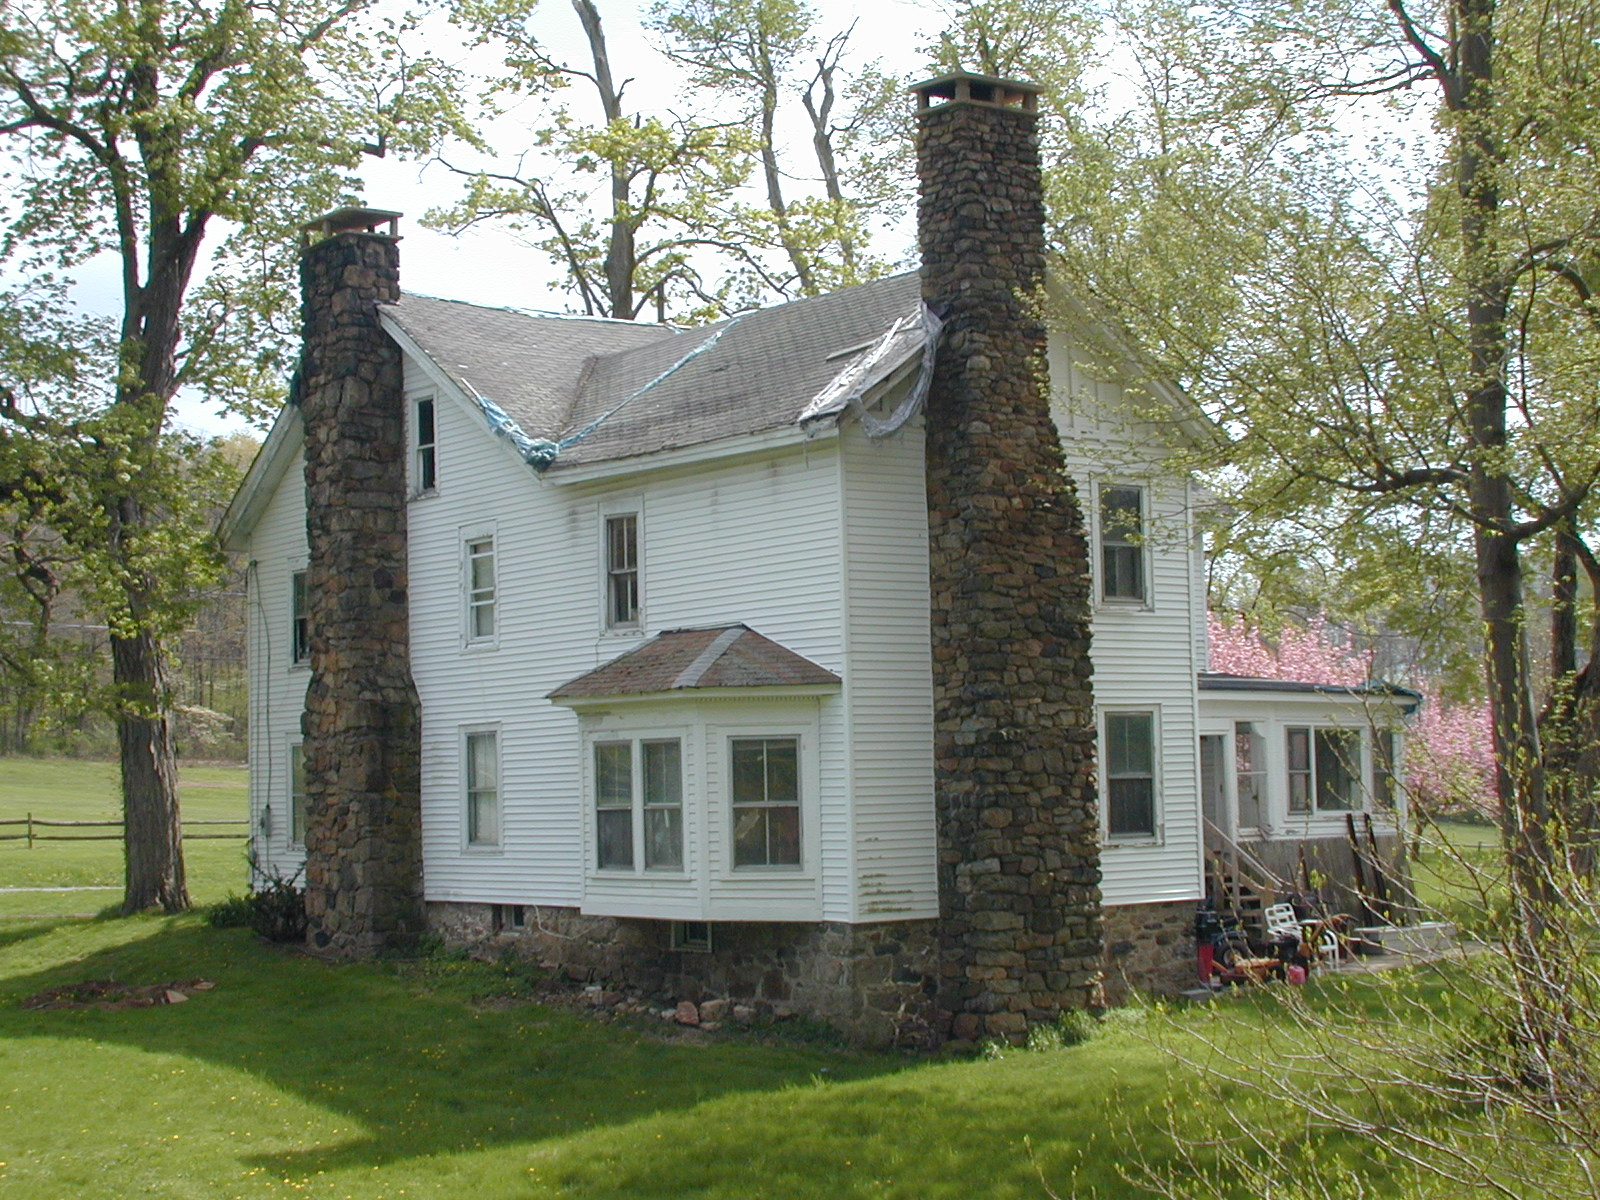 Side View, House on Furnace Road